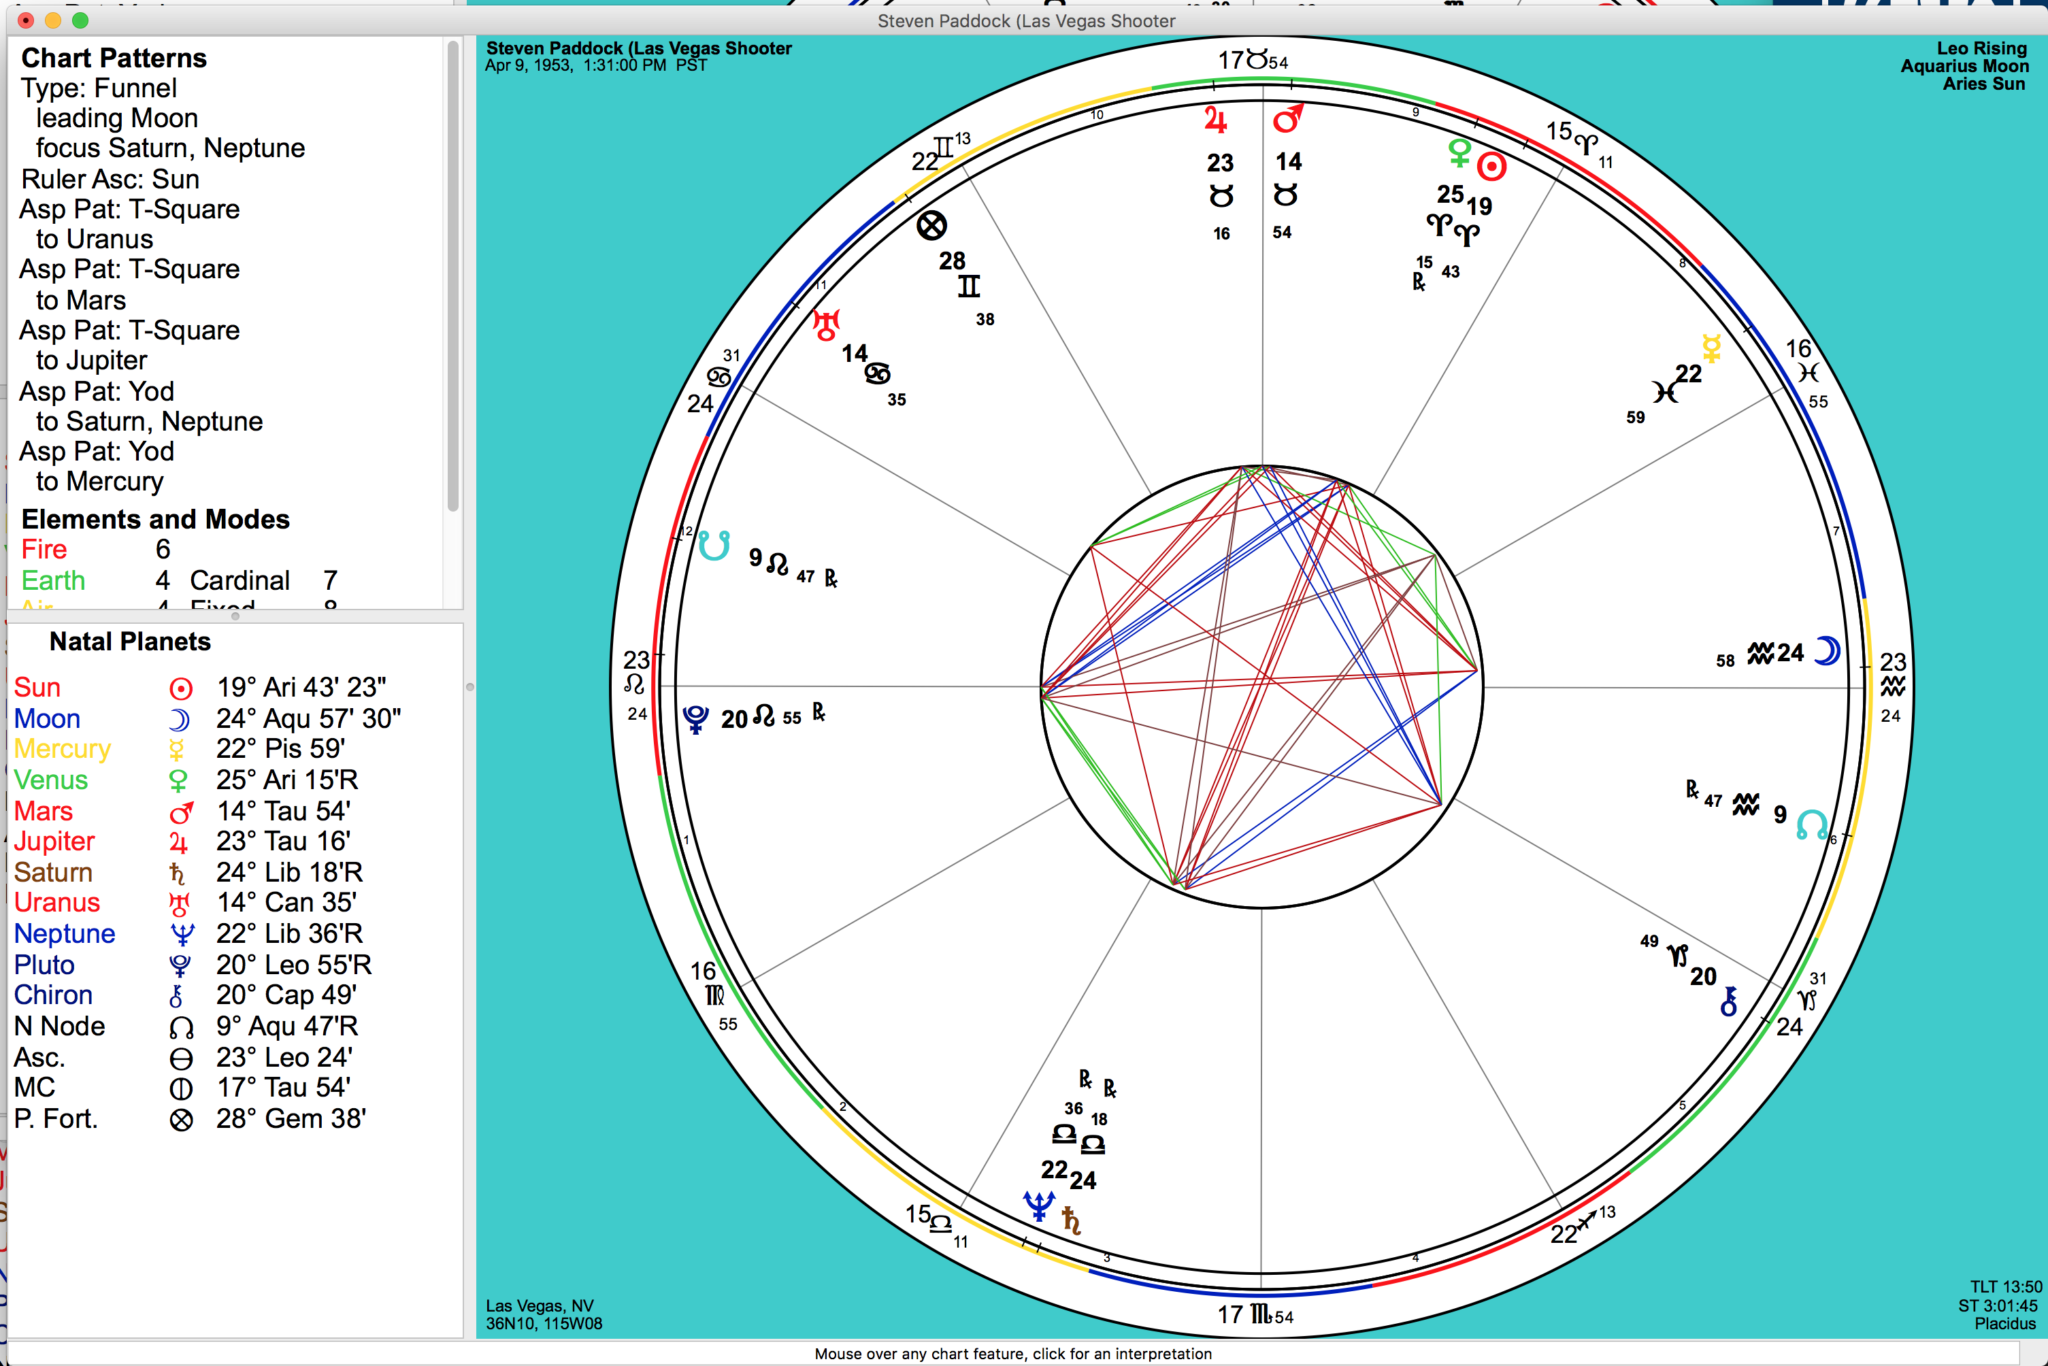 The astrological chart of Stephen Paddock, the Las Vegas shooter